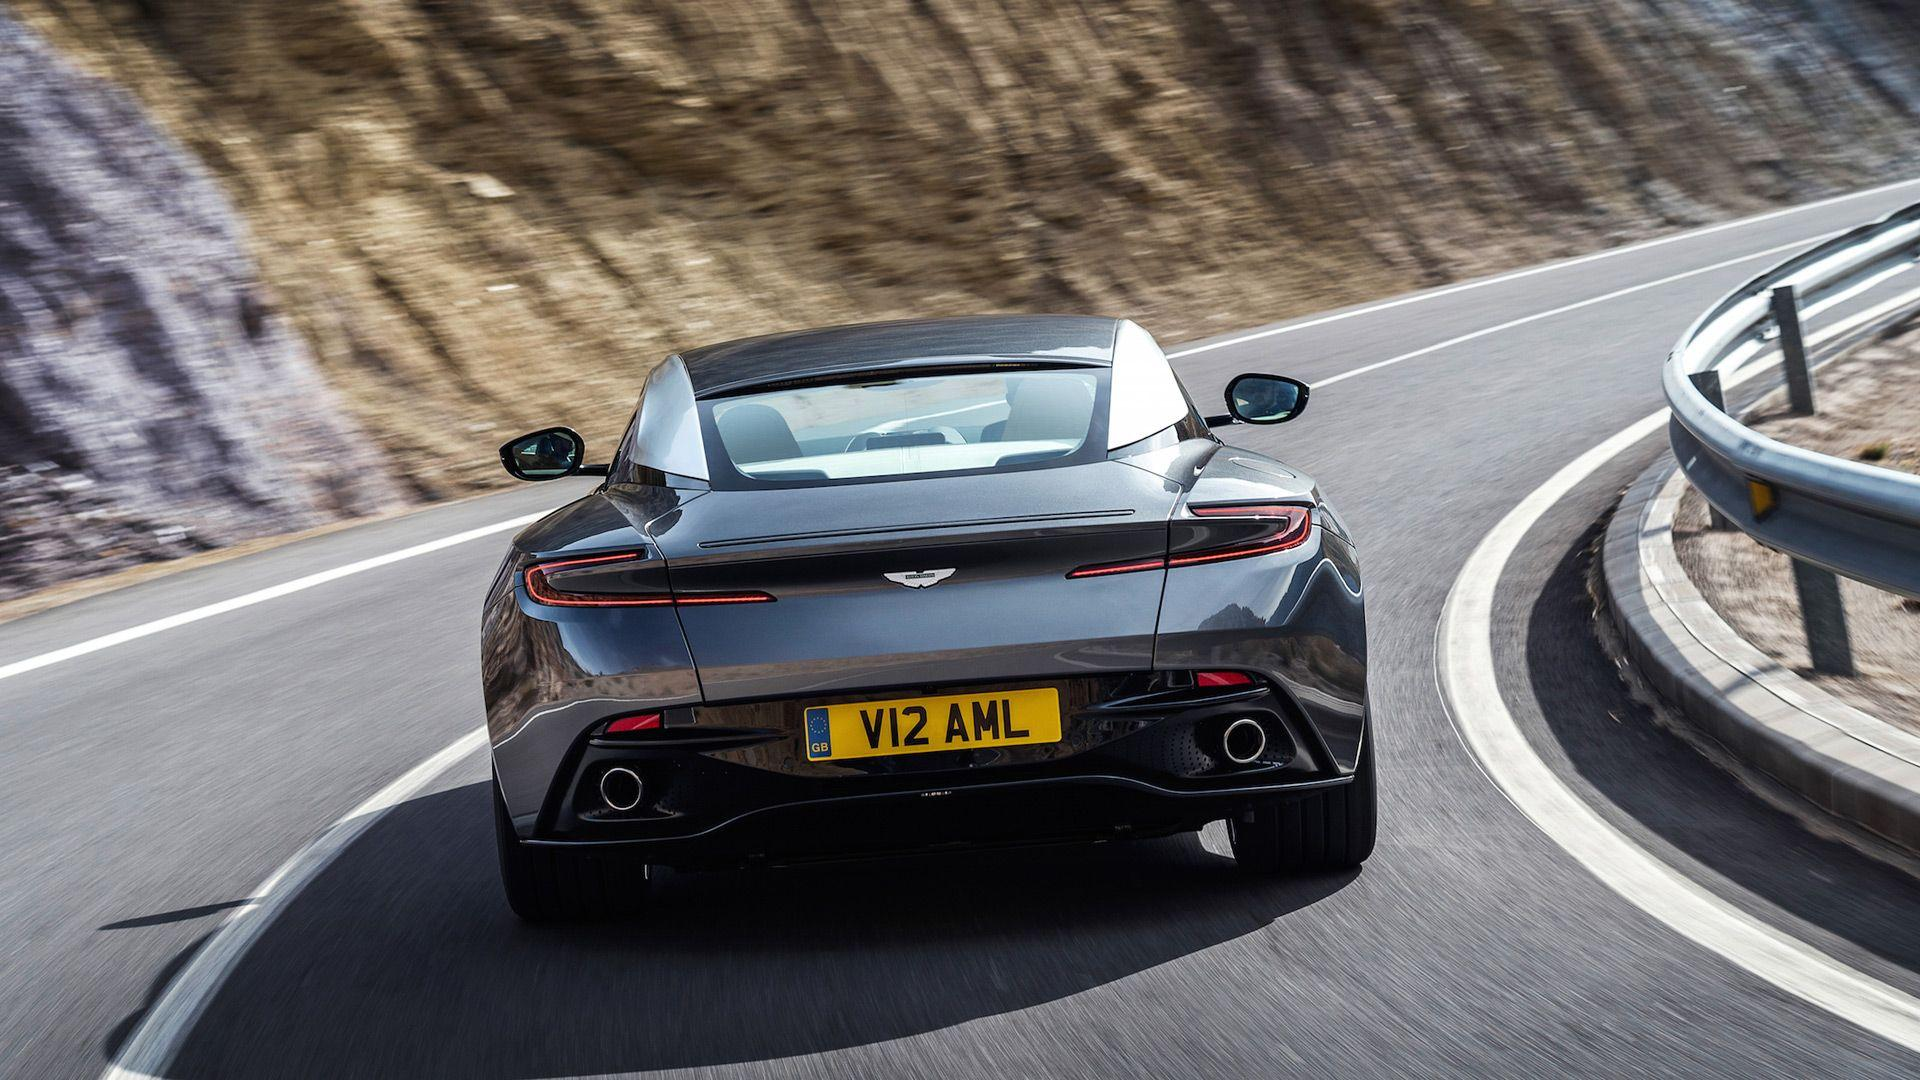 Aston Martin already has 1,400 orders for DB11